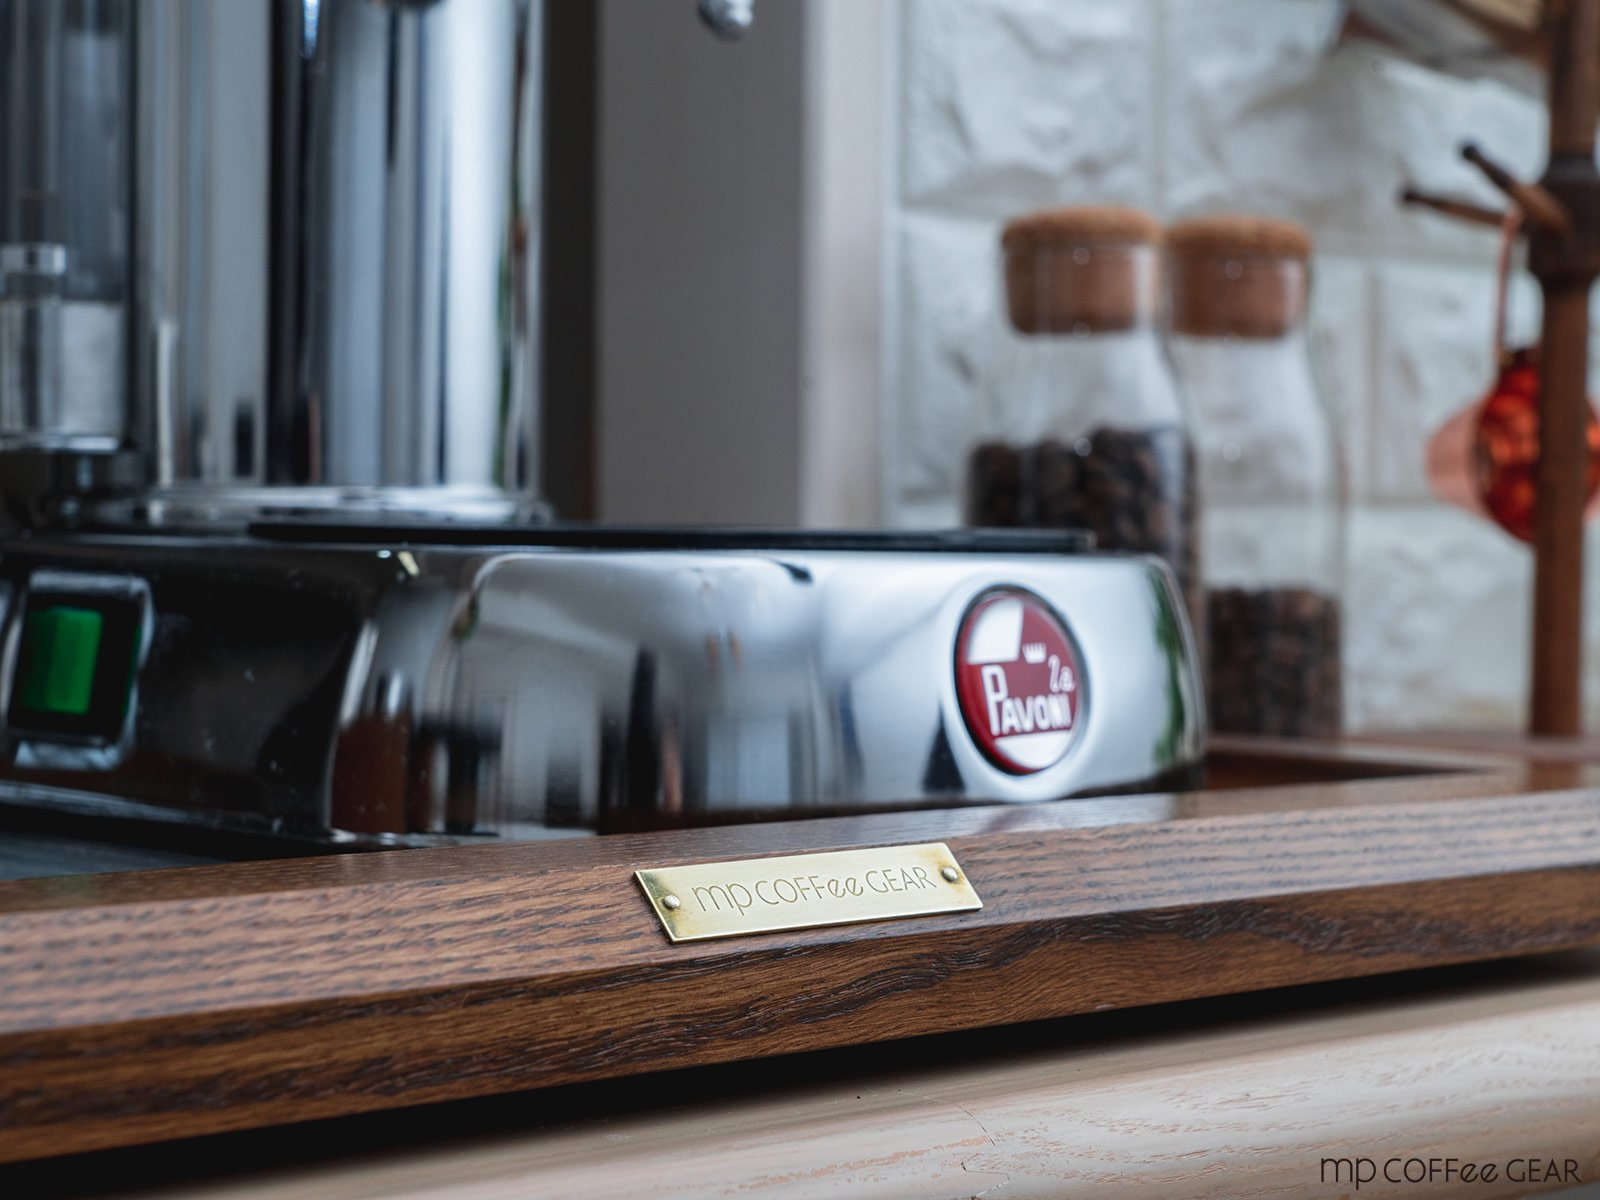 mp coffee gear エスプレッソマシンボード(レベルアジャスター付き) mp COFFee GEAR<img class='new_mark_img2' src='https://img.shop-pro.jp/img/new/icons1.gif' style='border:none;display:inline;margin:0px;padding:0px;width:auto;' />